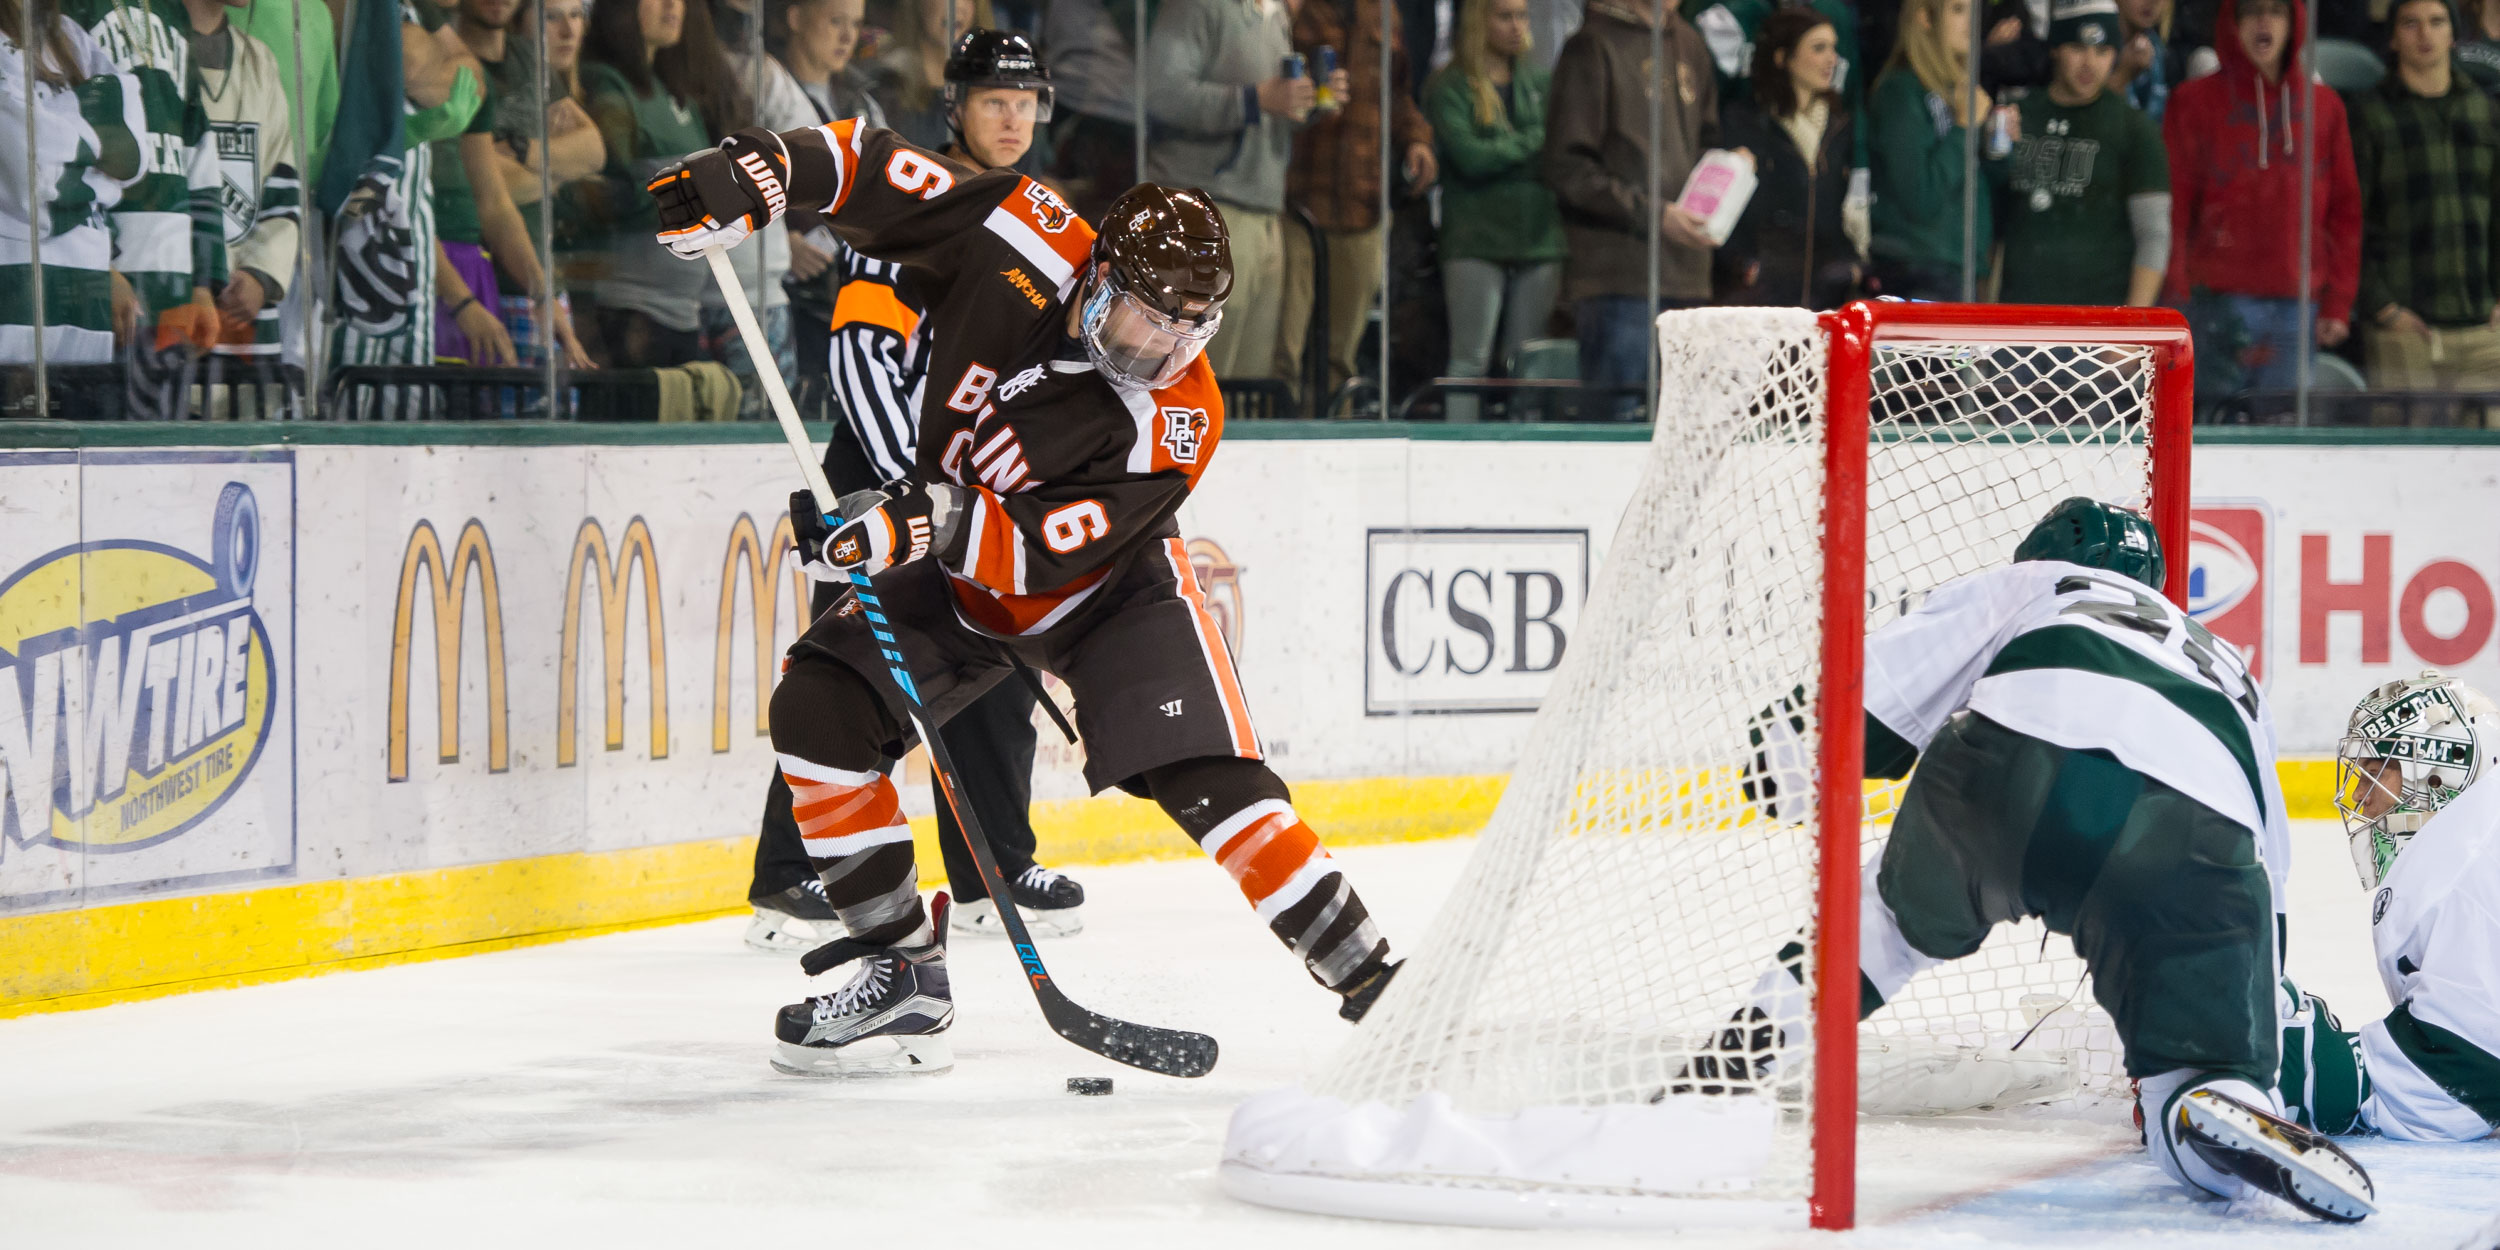 BSU completes sweep with 4-1 defeat of BG